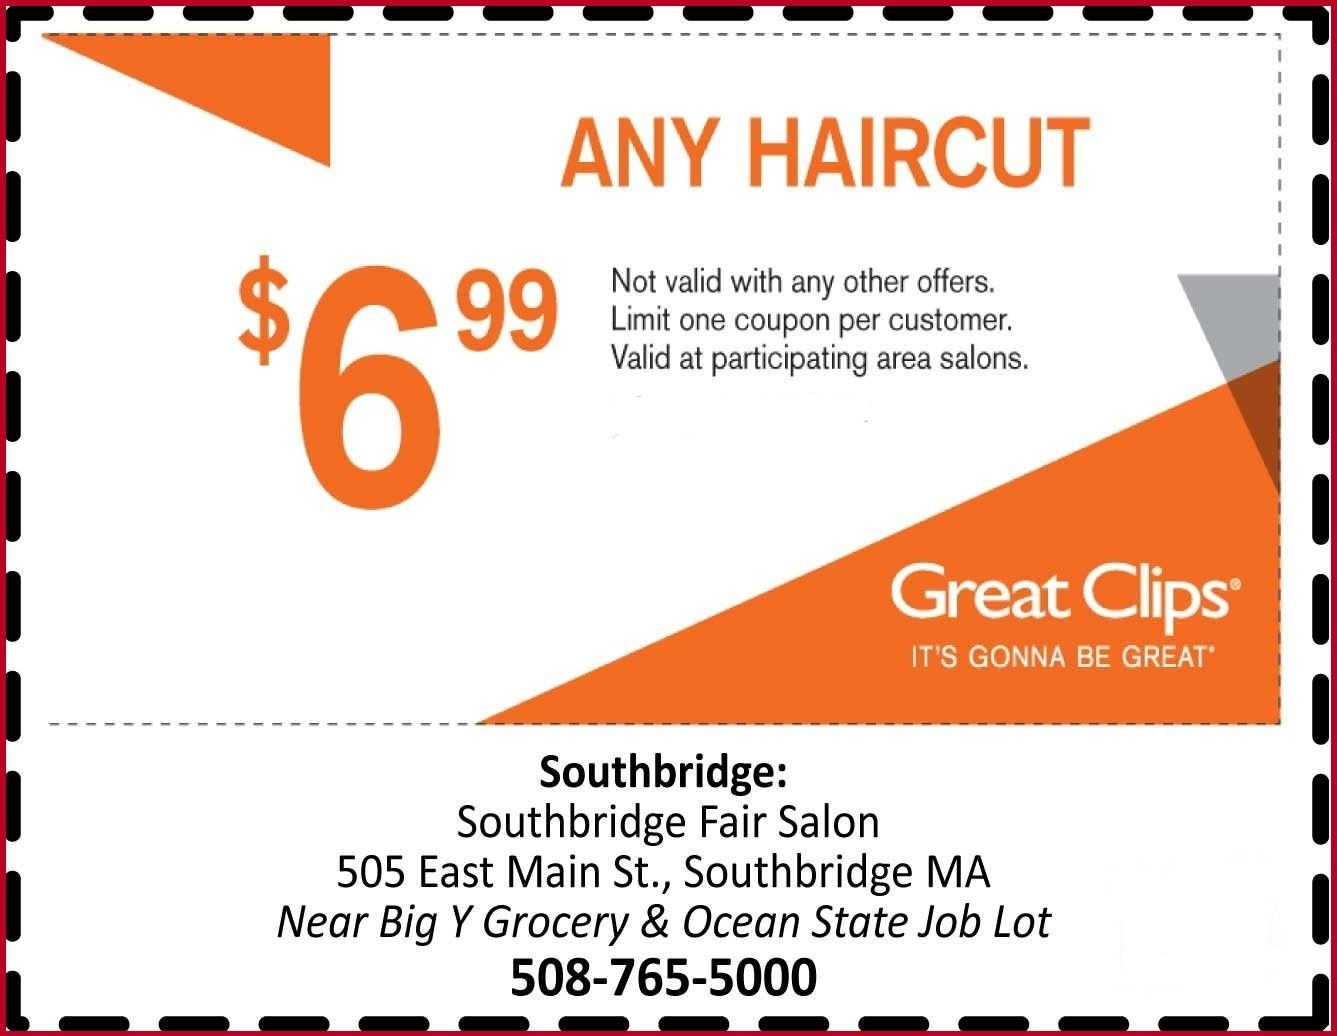 Great Clips Coupons 2019 Great Clips Haircut Great Clips Coupons Haircut Coupons